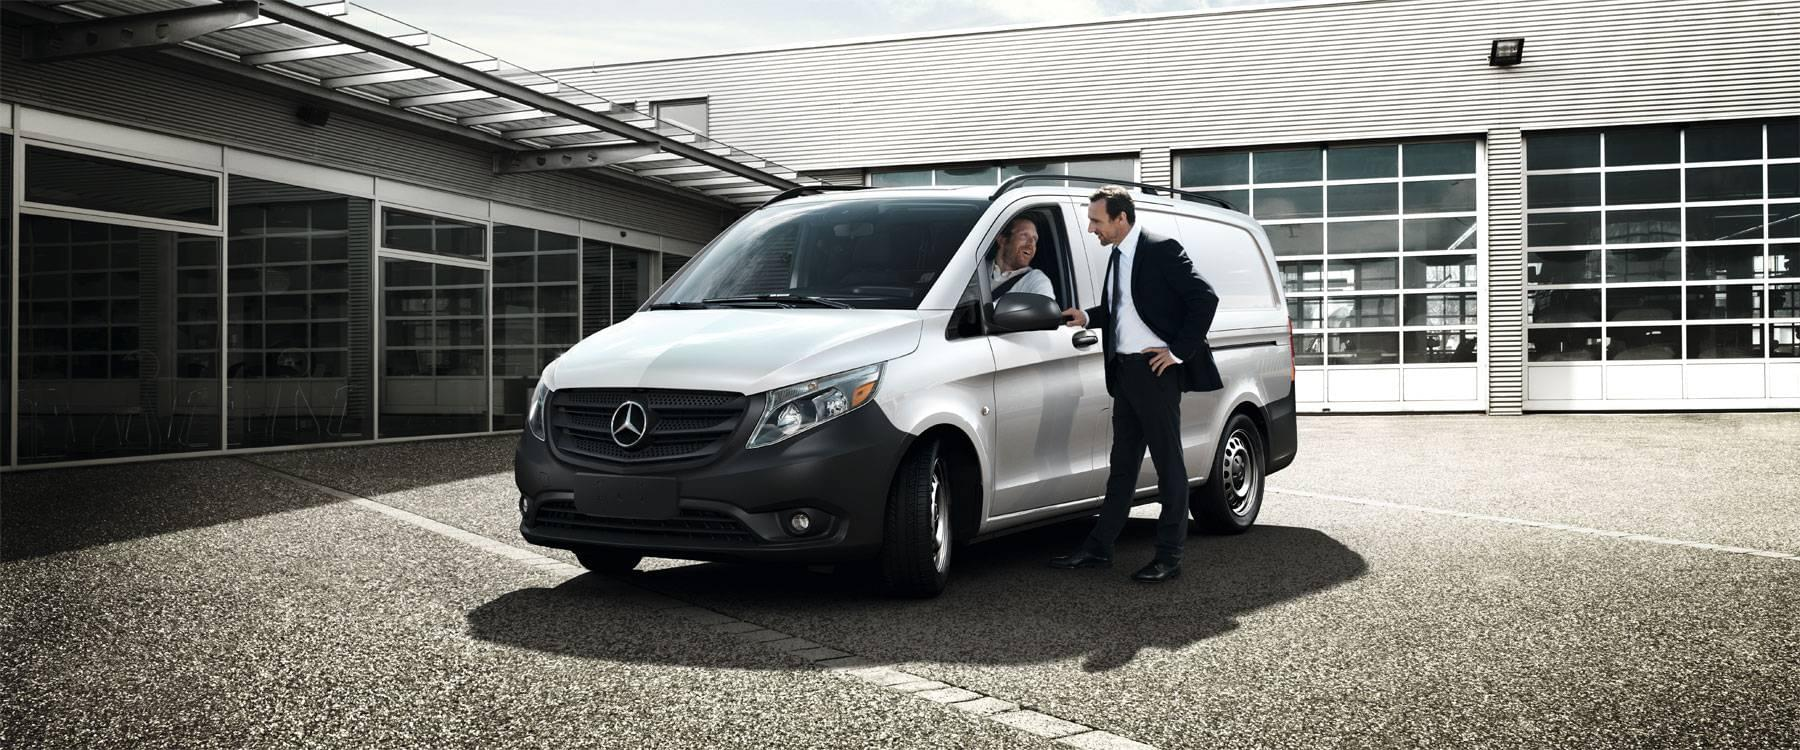 2018 mercedes benz metris in baltimore md mercedes benz for Mercedes benz of catonsville catonsville md